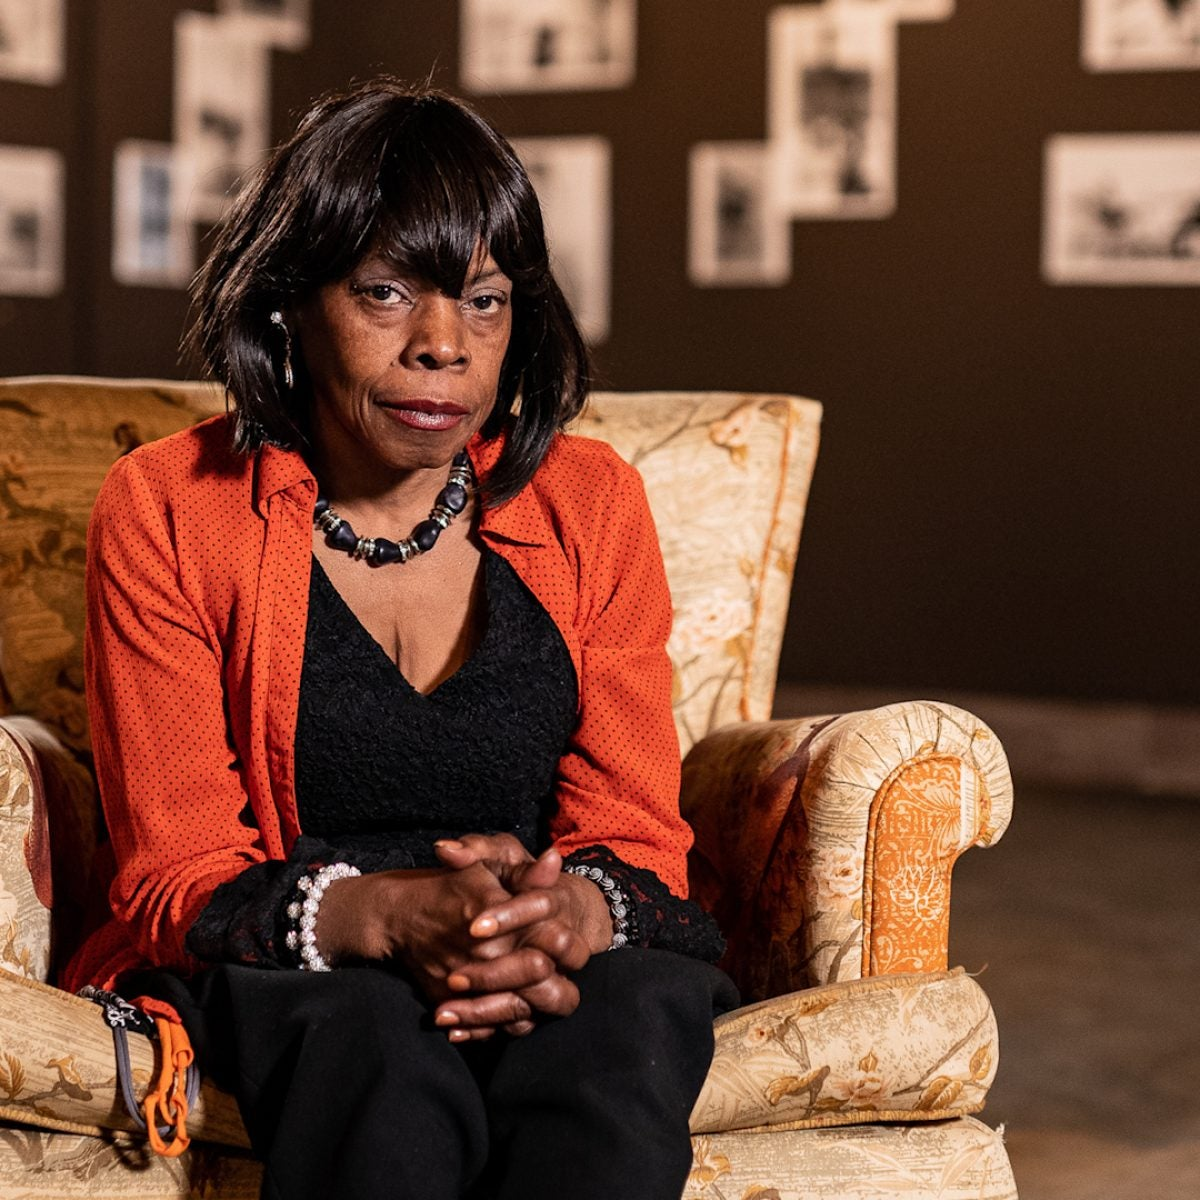 Descendants of the Tulsa Race Massacre Are Fighting for Justice. A New Documentary Hosted by Trymaine Lee Explores How.